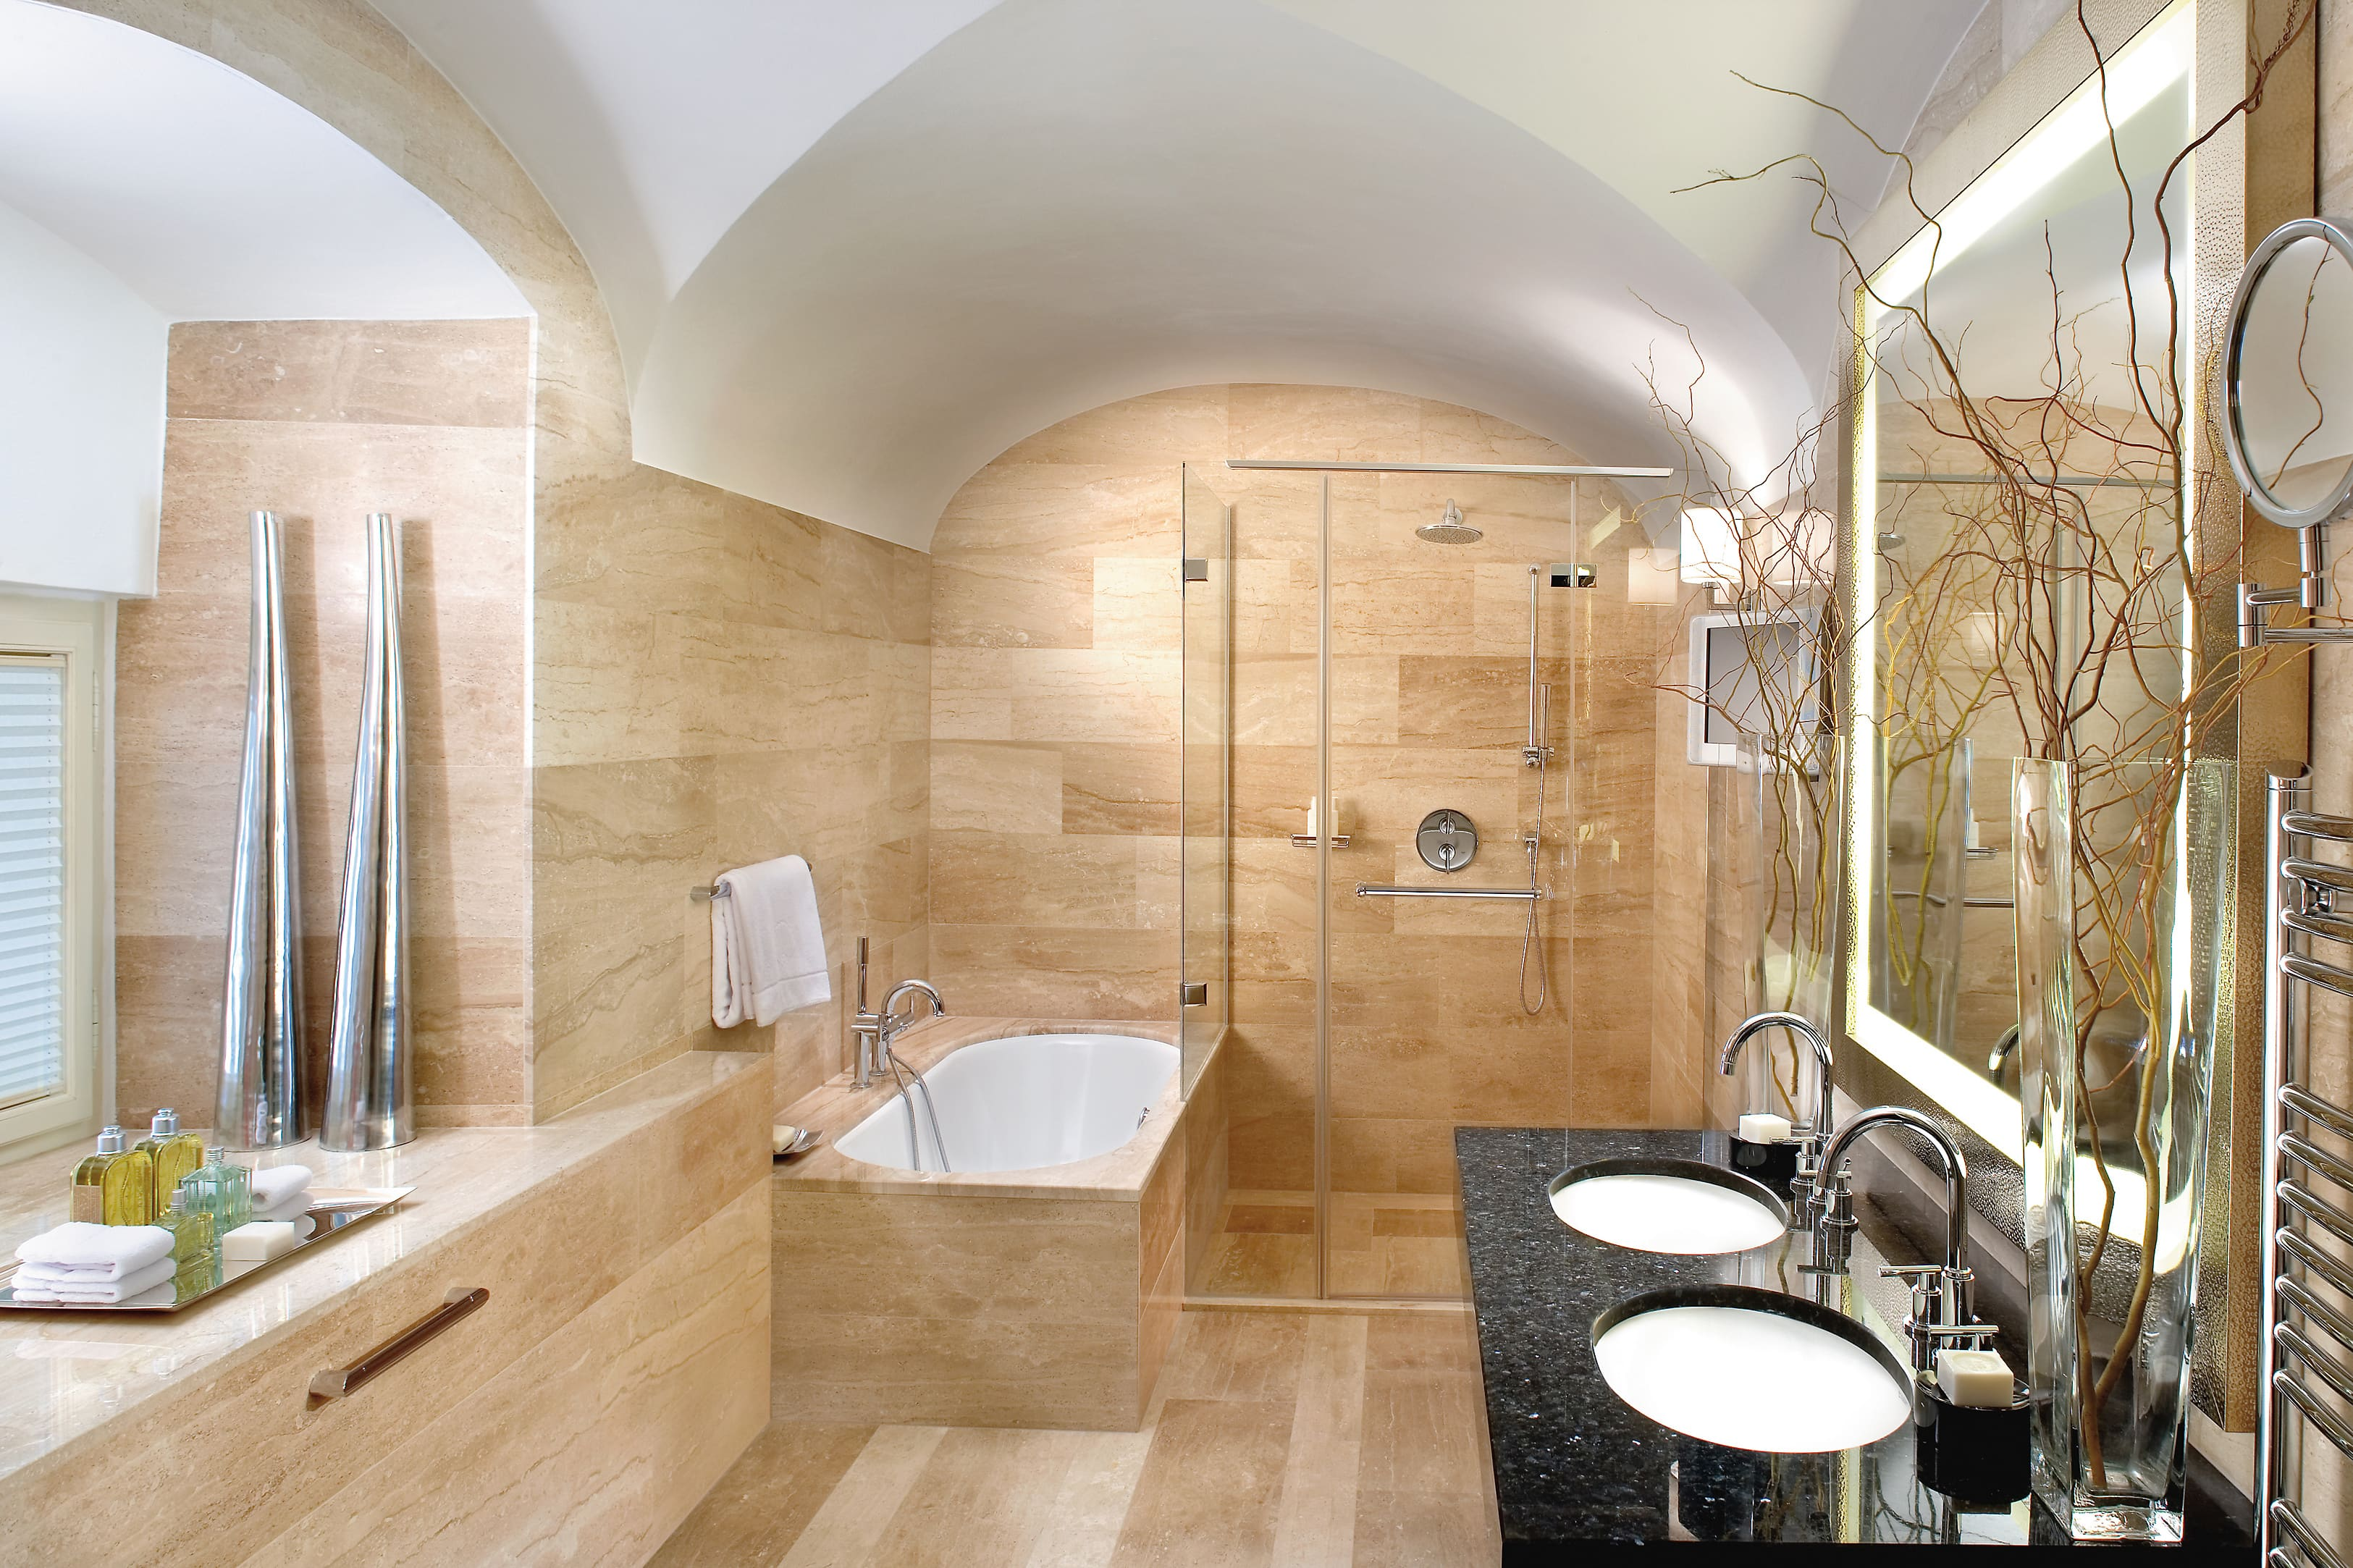 Prague hotel photo gallery mandarin oriental prague for Salle de bain orientale luxe